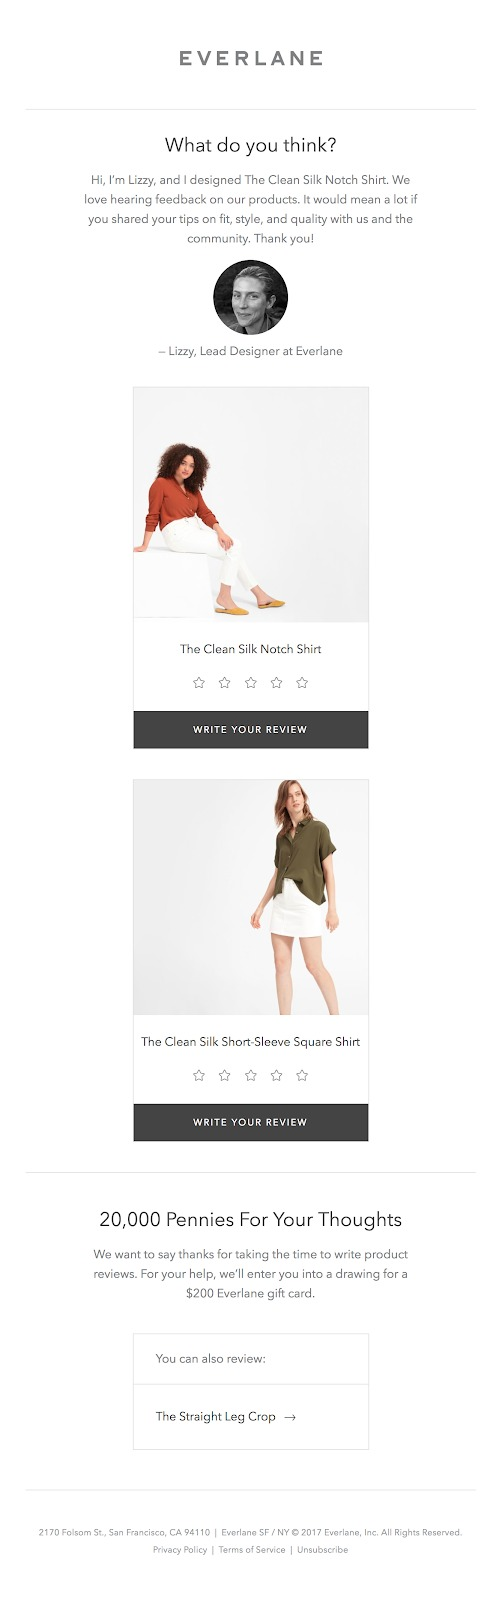 effective email marketing everlane